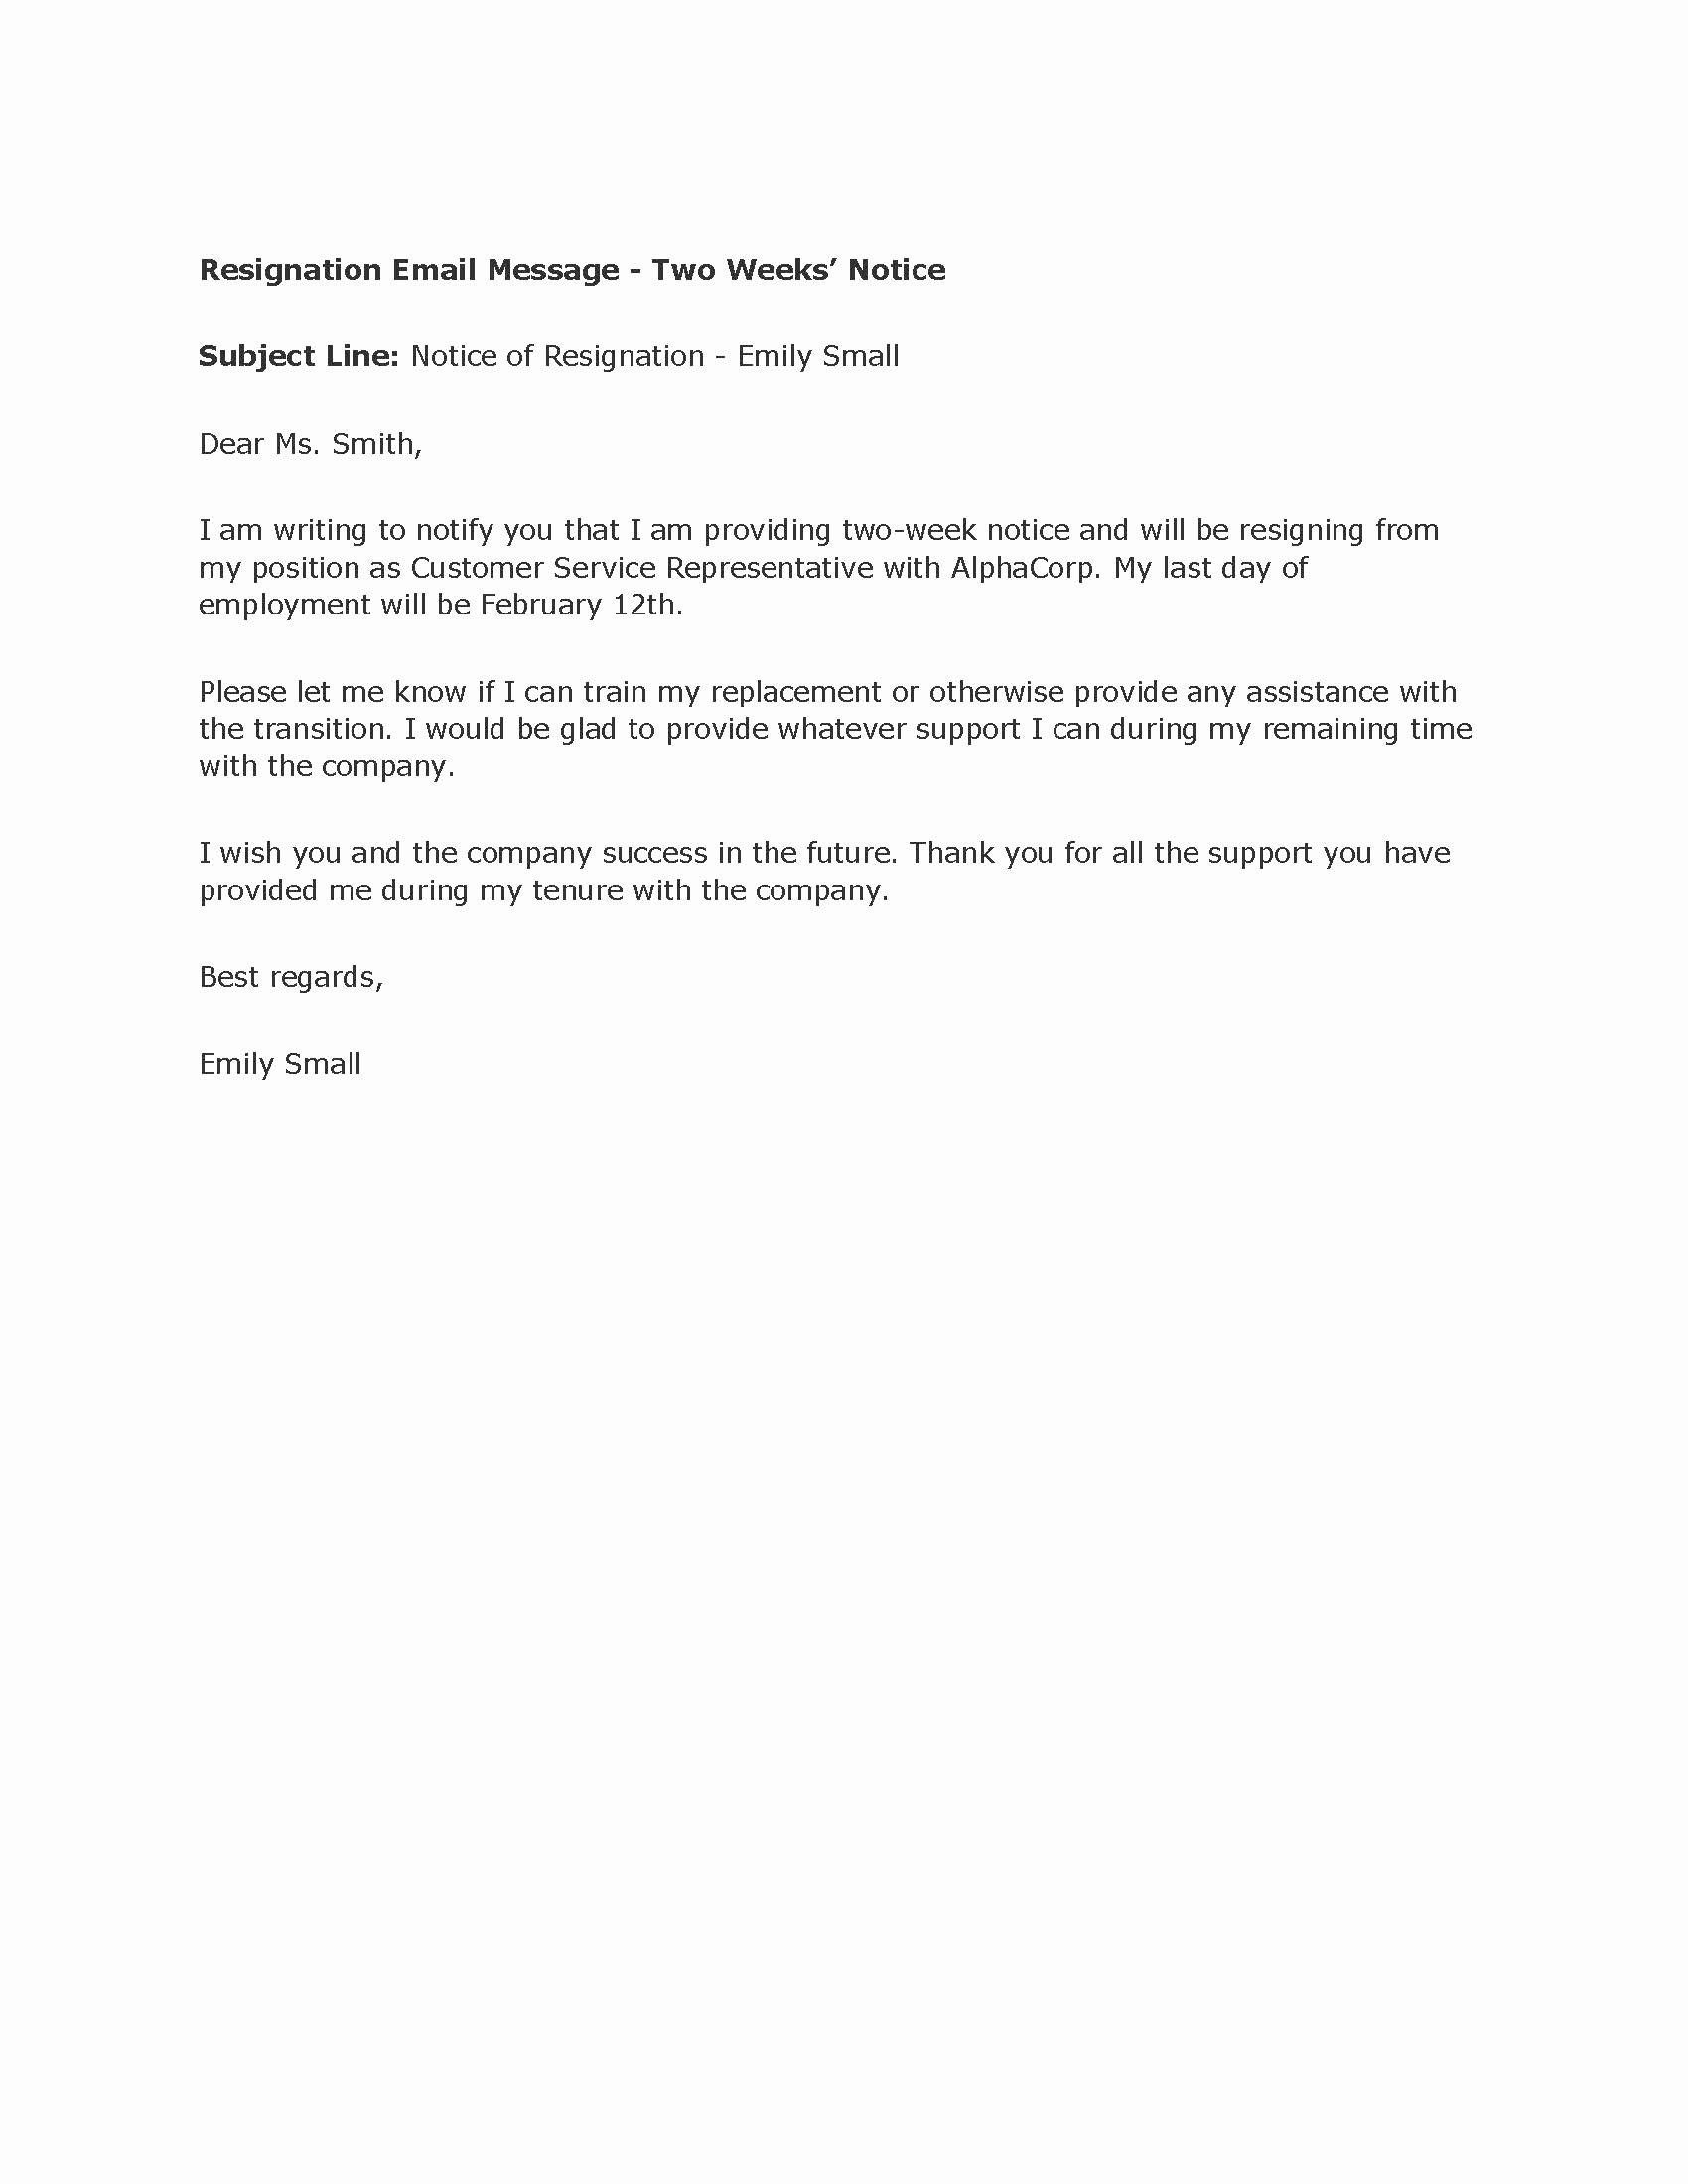 Sample Of Two Weeks Notice Letter Beautiful Professional Two Weeks Notice Letter Templates